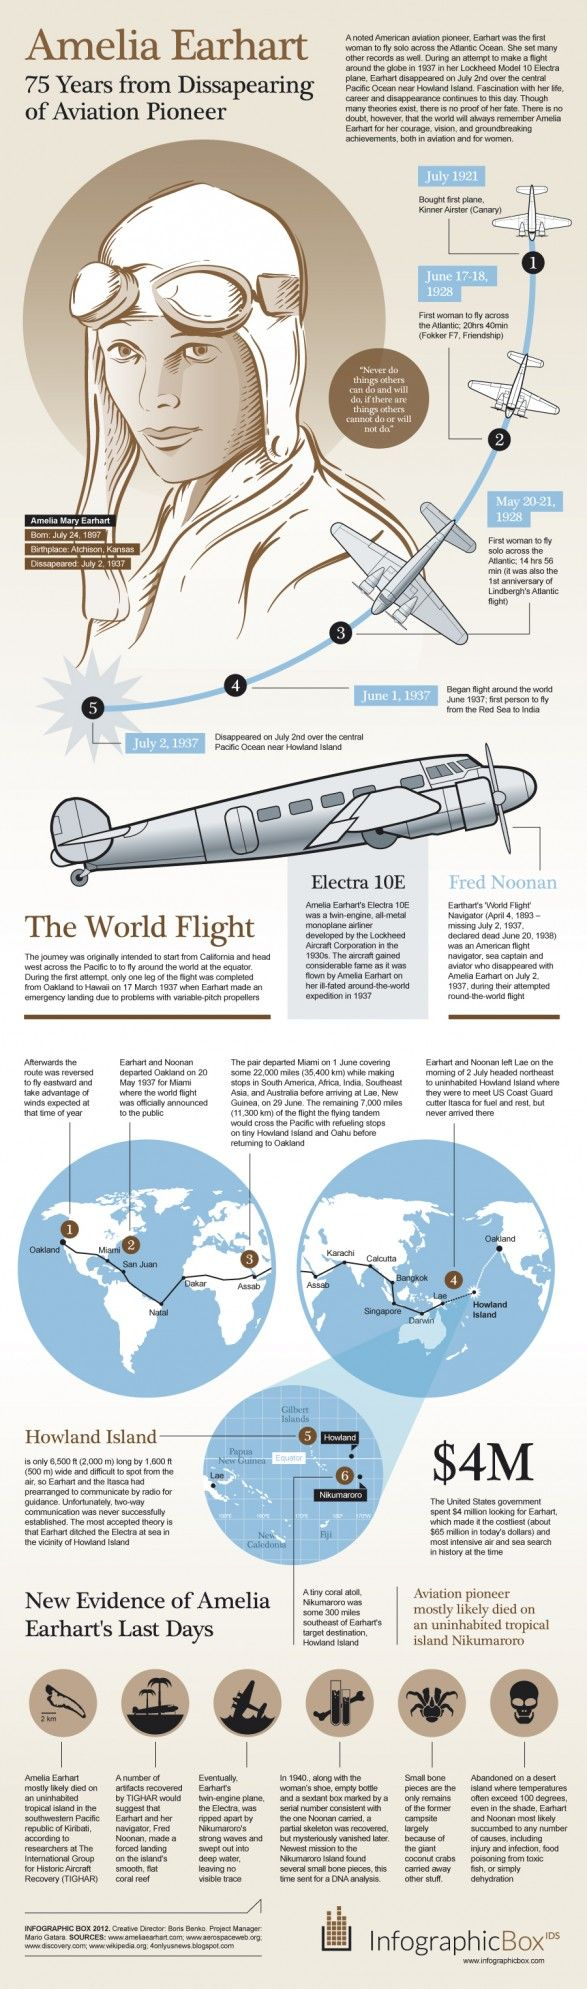 Best 95 amelia earhart ideas on pinterest amelia earhart history amelia earhart 75 years from disappearance of aviation pioneer infographic ccuart Image collections